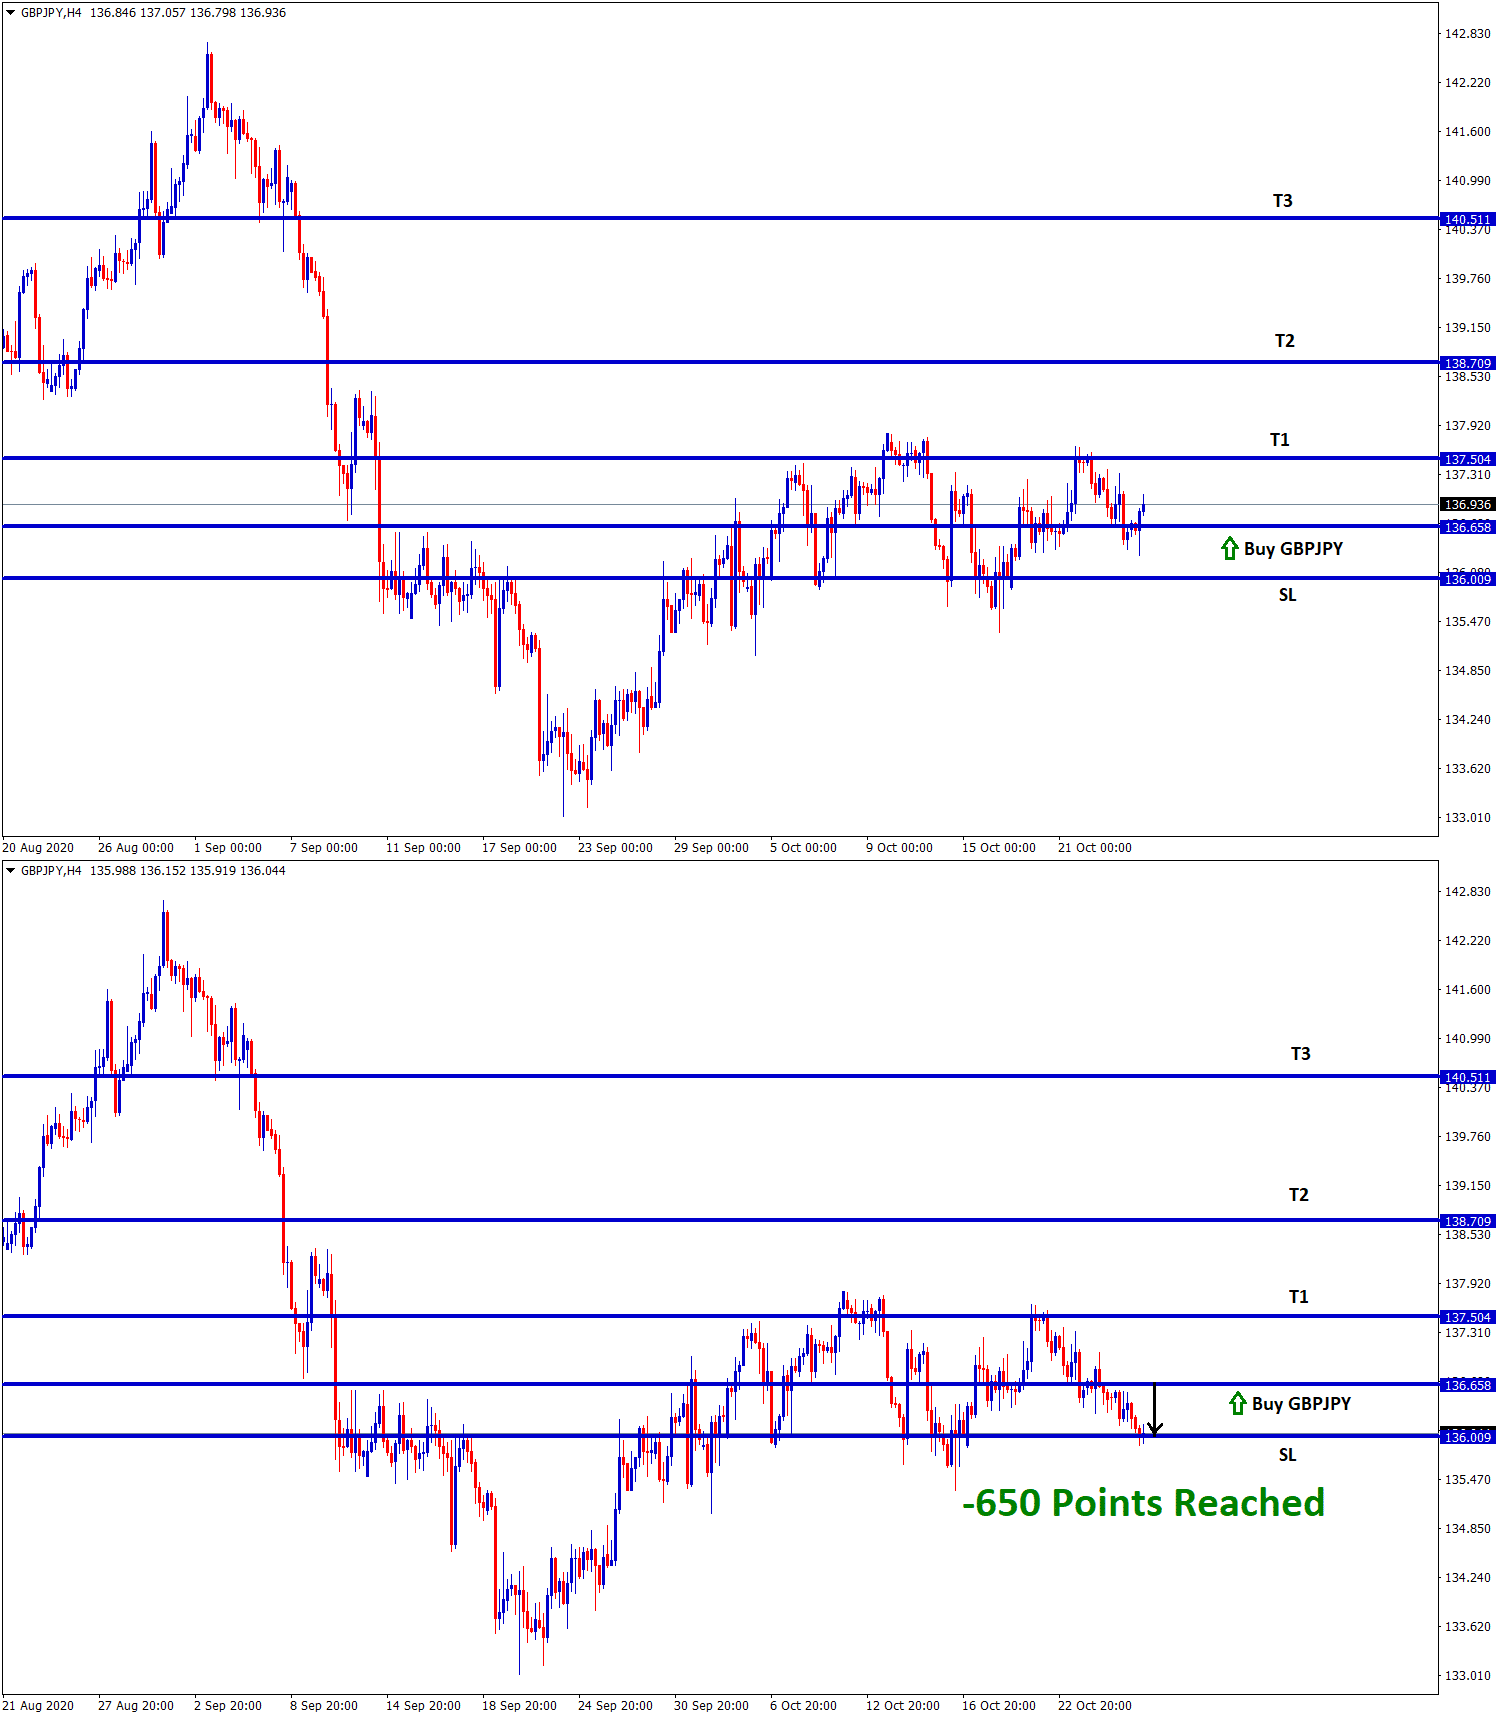 GBPJPY SL reached after breaking higher low